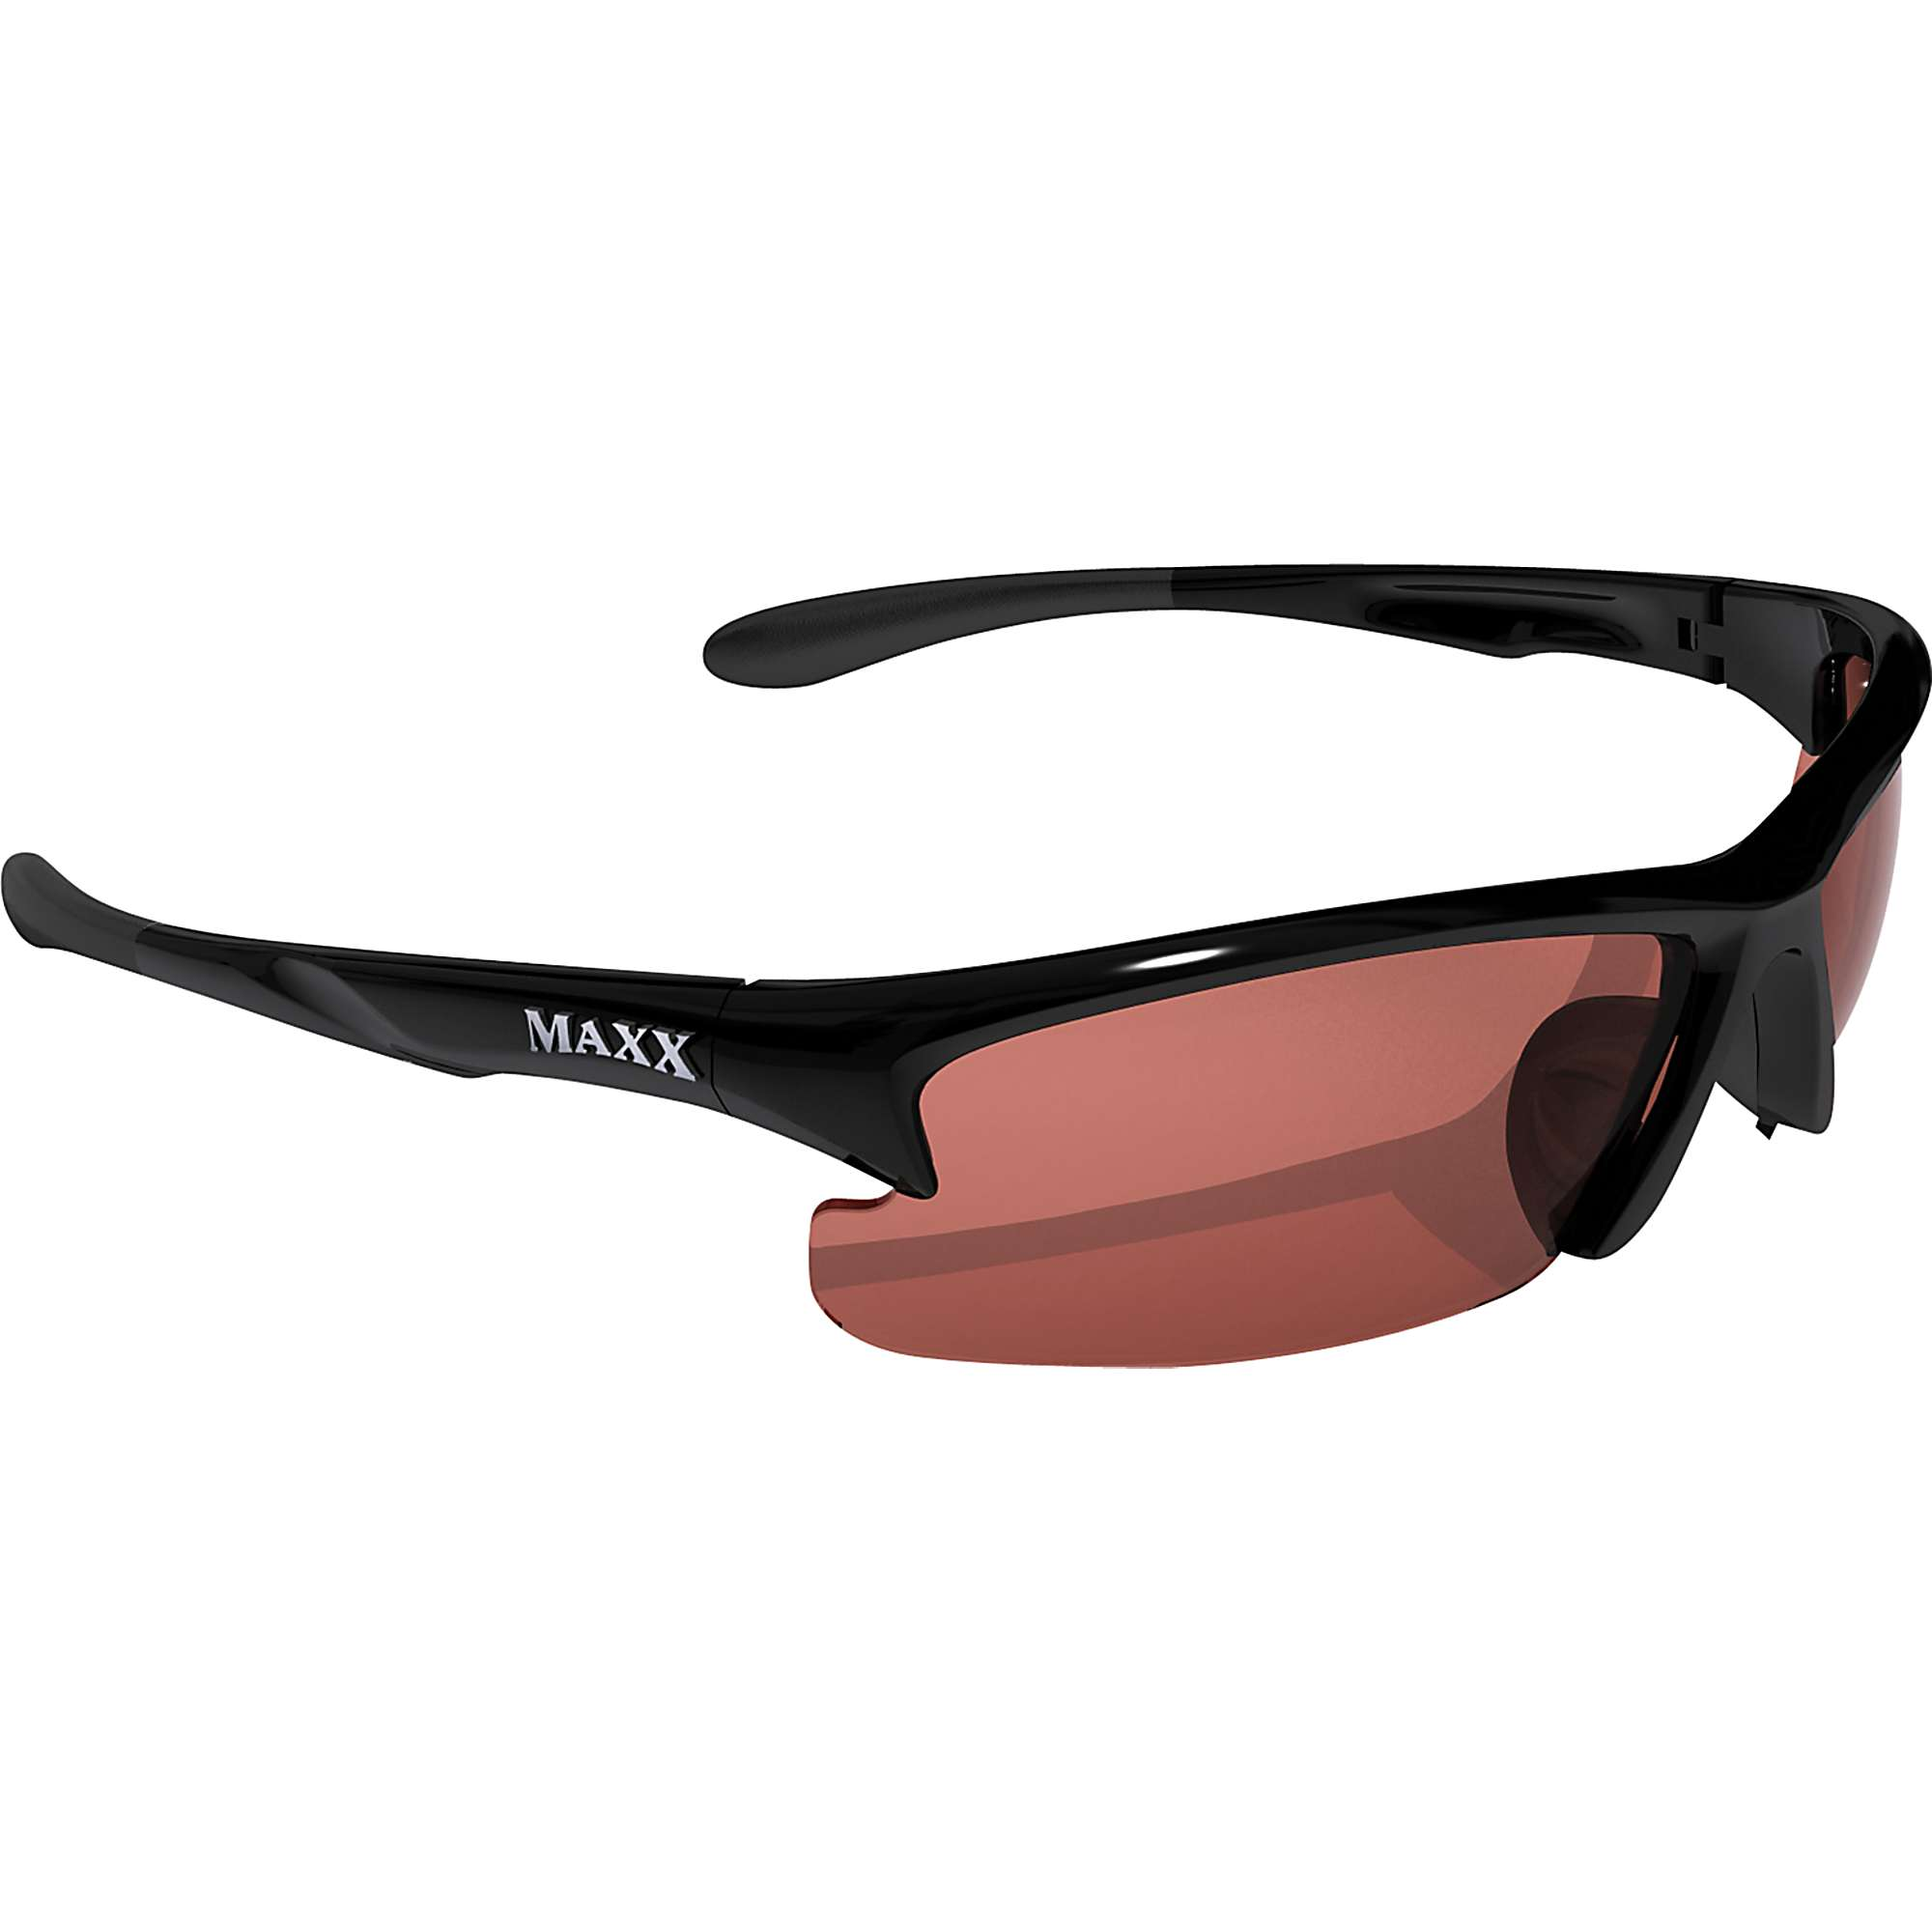 Maxx Hd Cinco Sunglasses